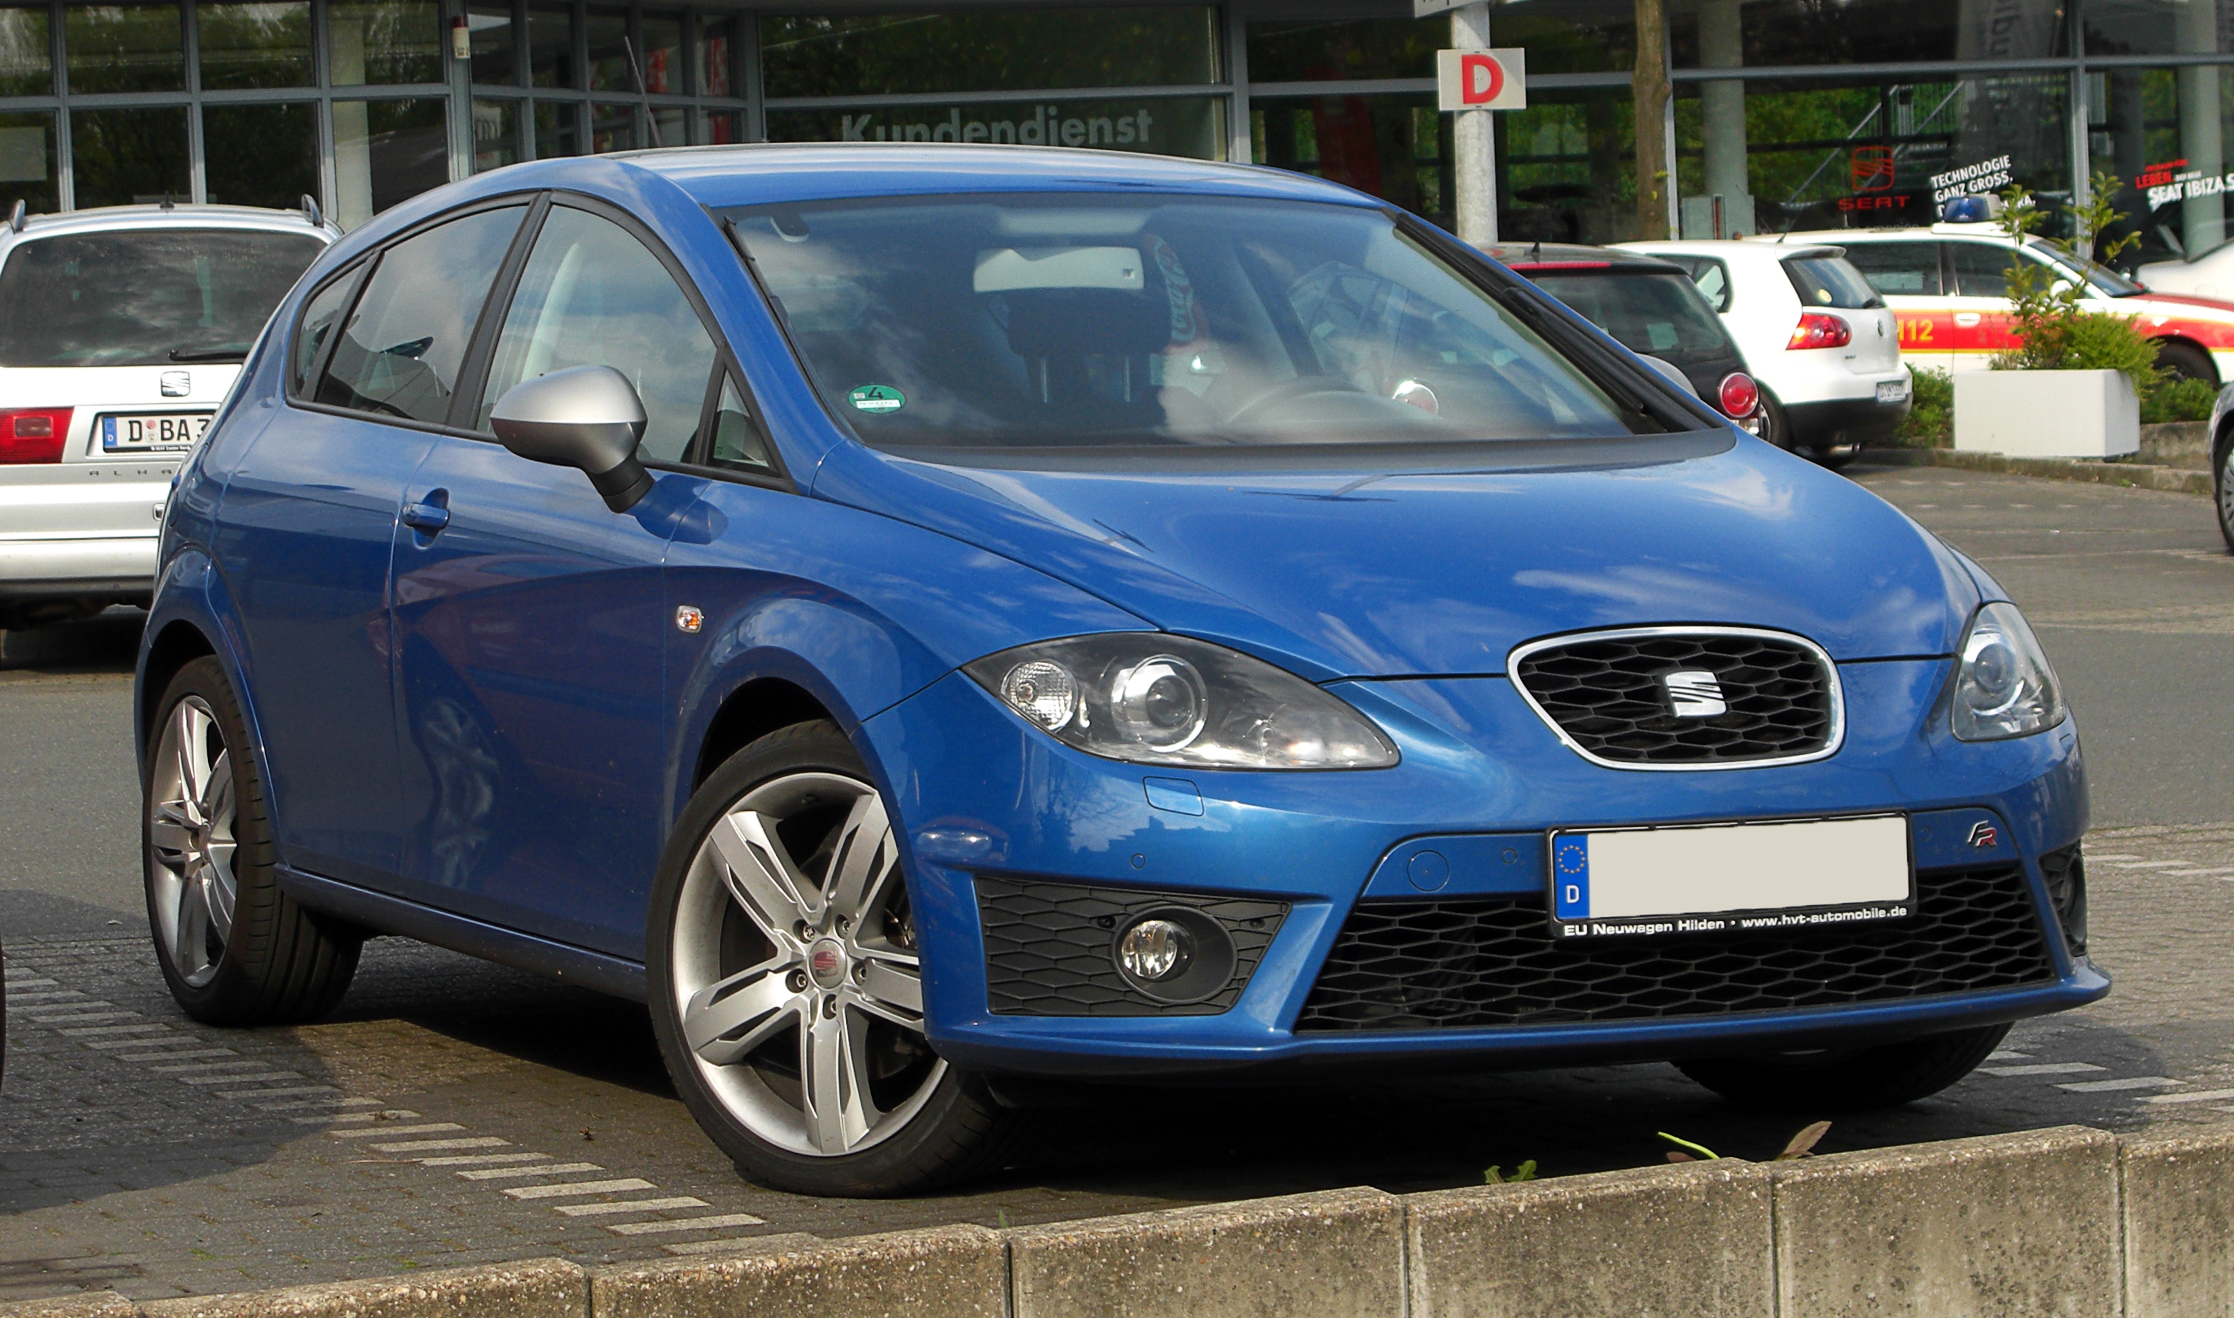 Ogromny 2014 Seat Leon ii (1p) – pictures, information and specs - Auto KH06